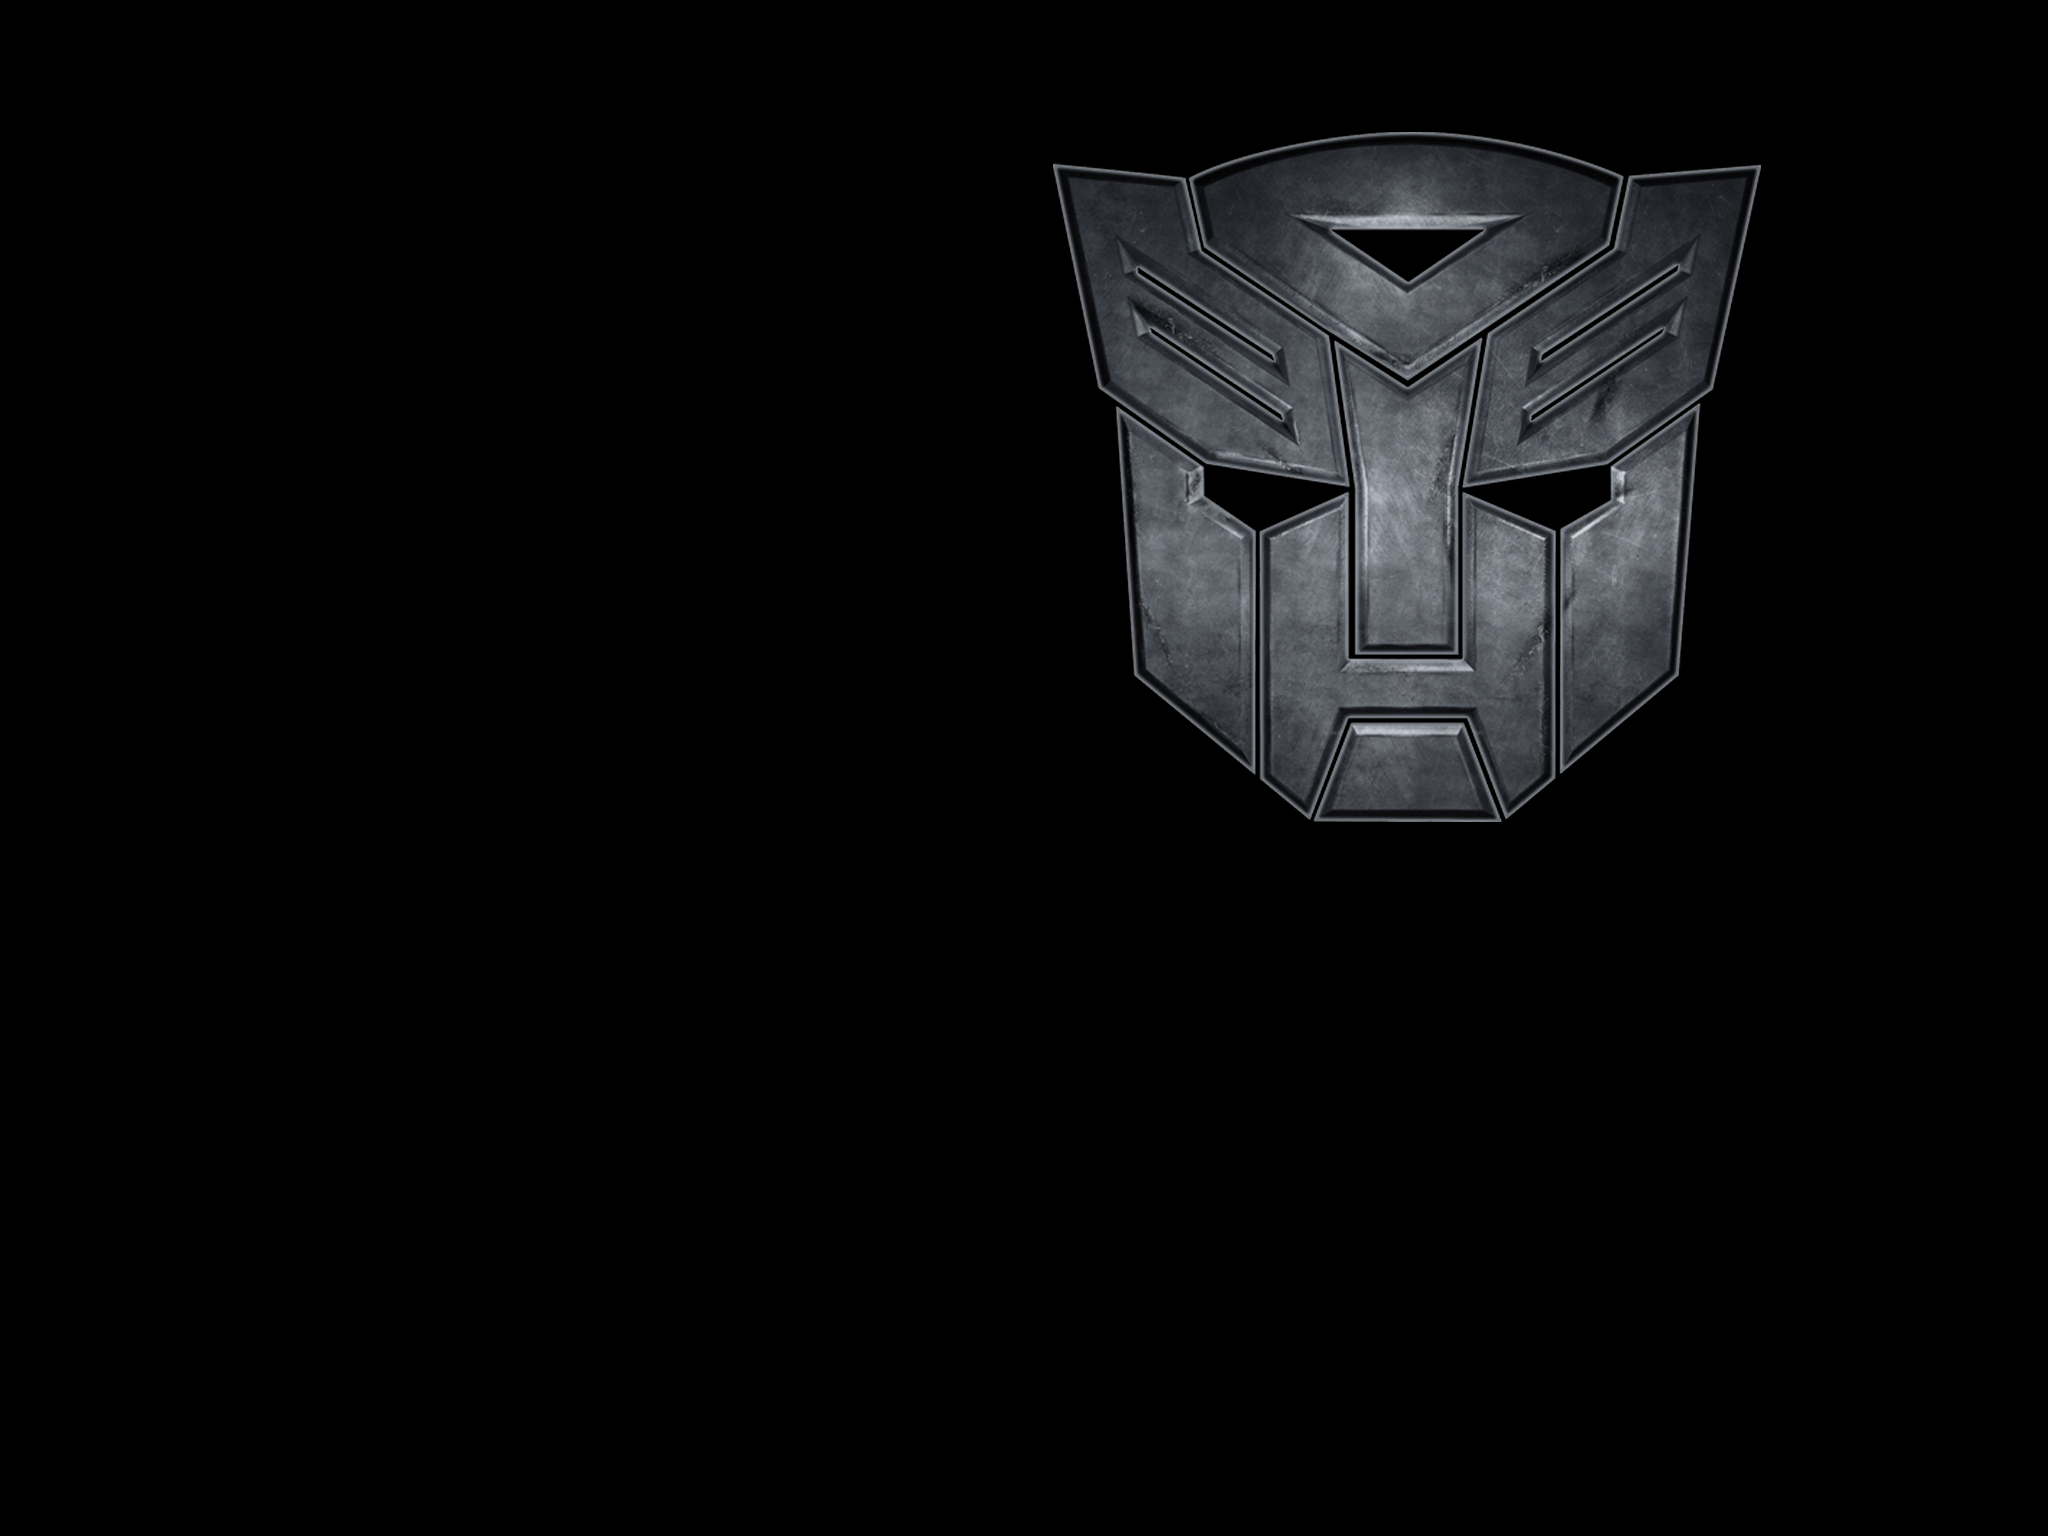 Transformers Phone Screen Design Wallpapers Bionic Style 2048x1536